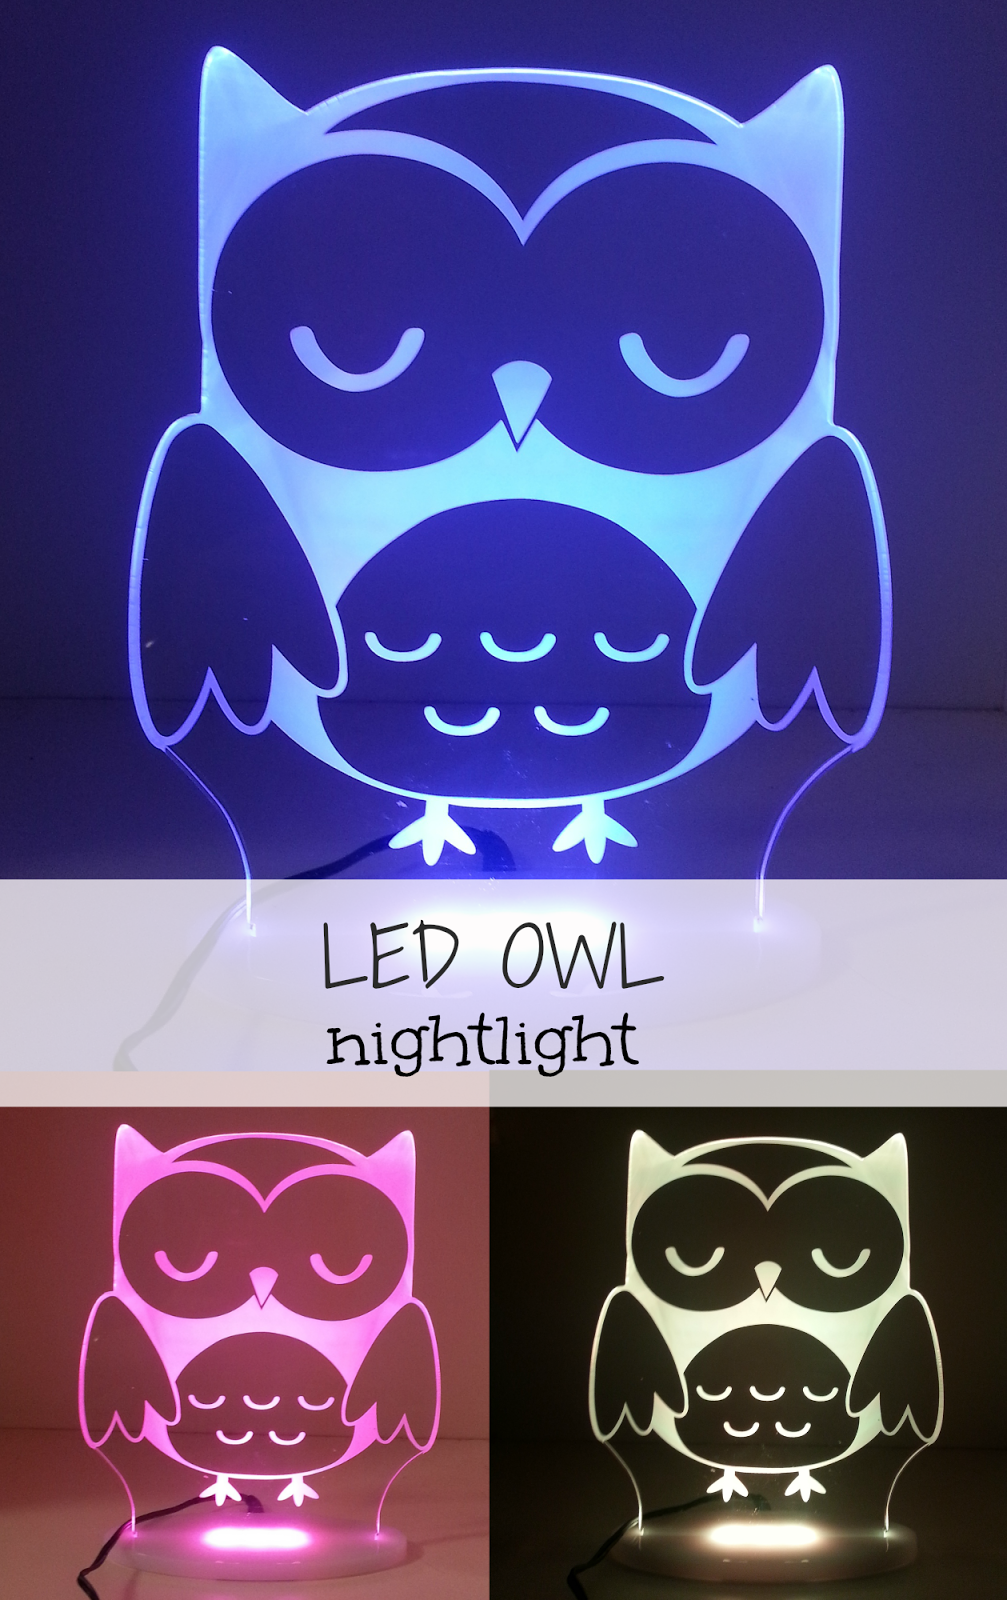 Led owl kids my dream night light